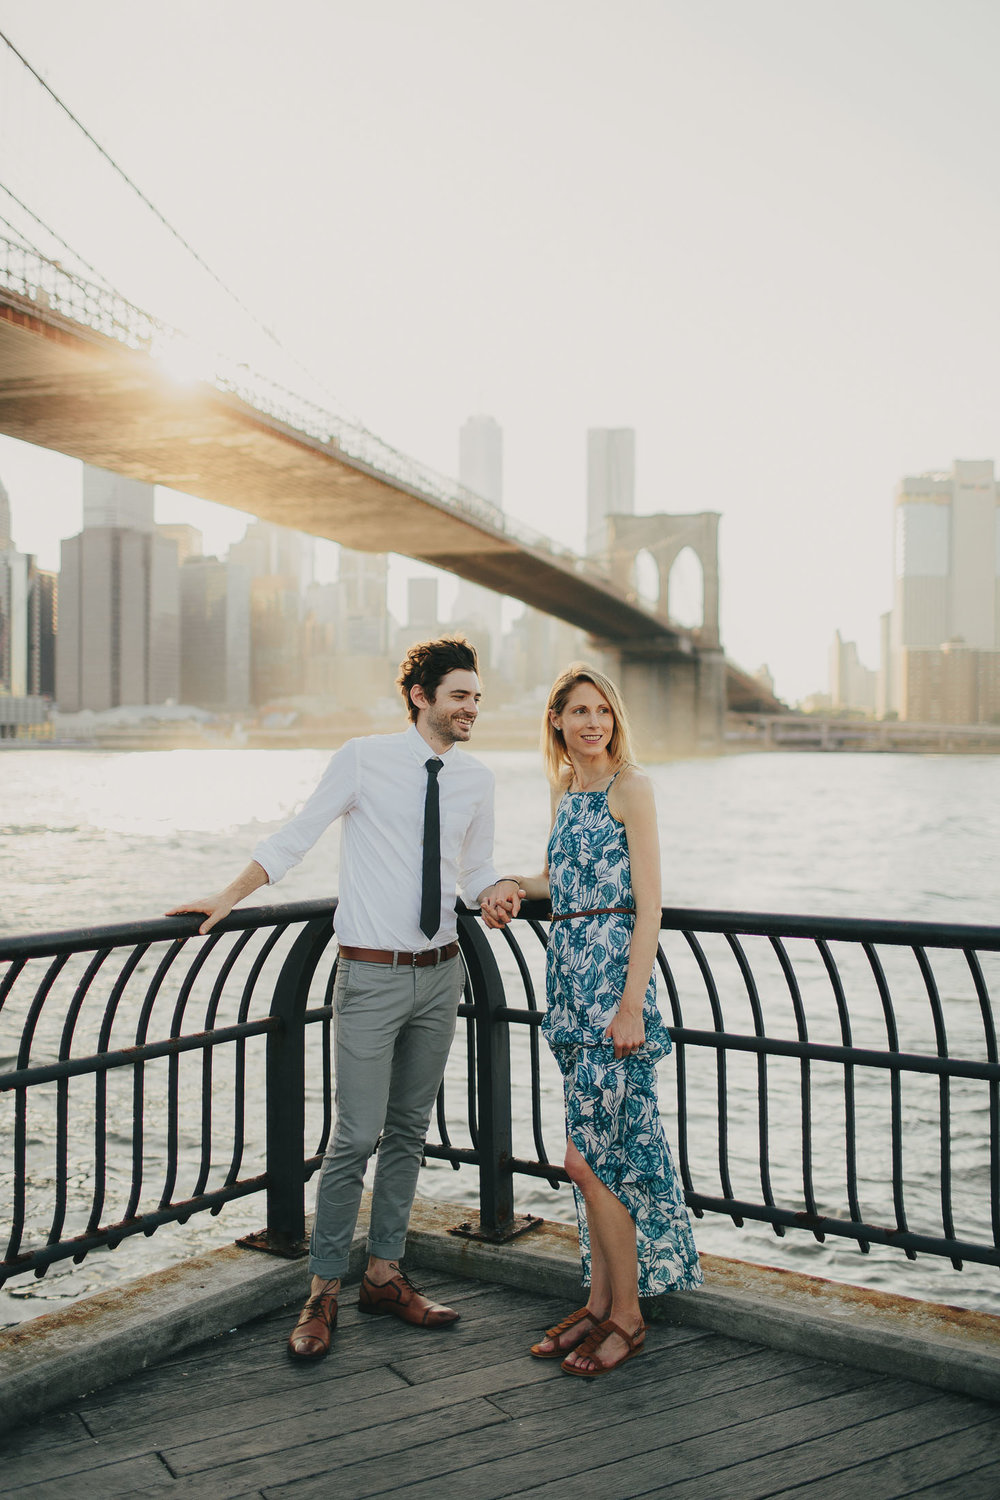 39 finch and oak engagement wedding photographer gold coast new york brooklyn.jpg